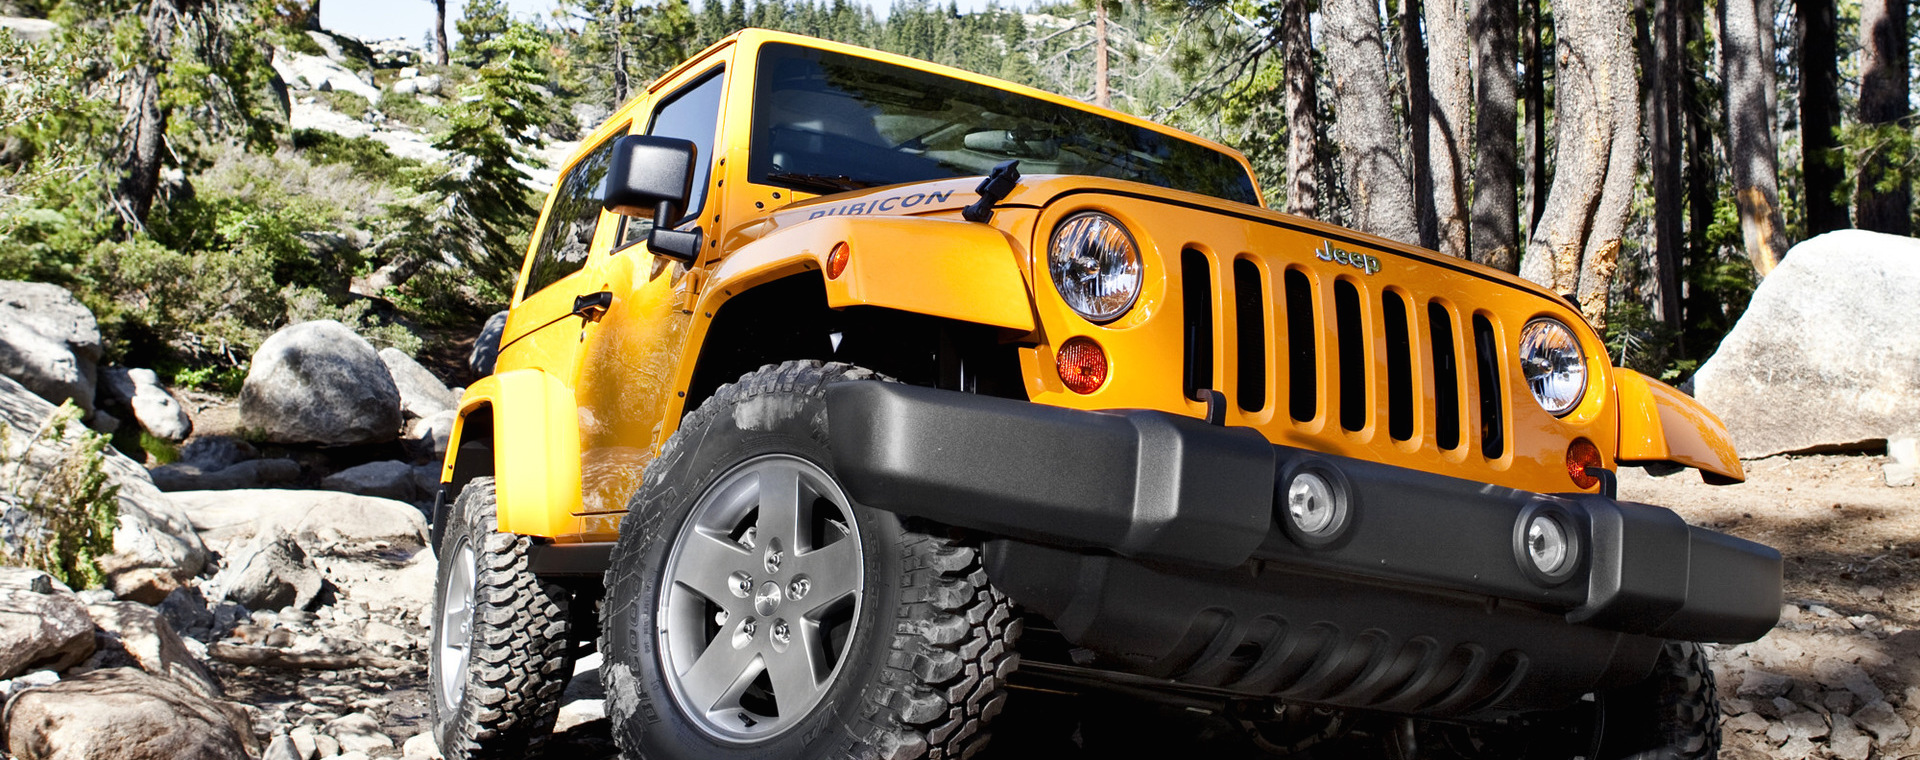 New Wrangler inventory at Quirk Chrysler Jeep Dodge Ram